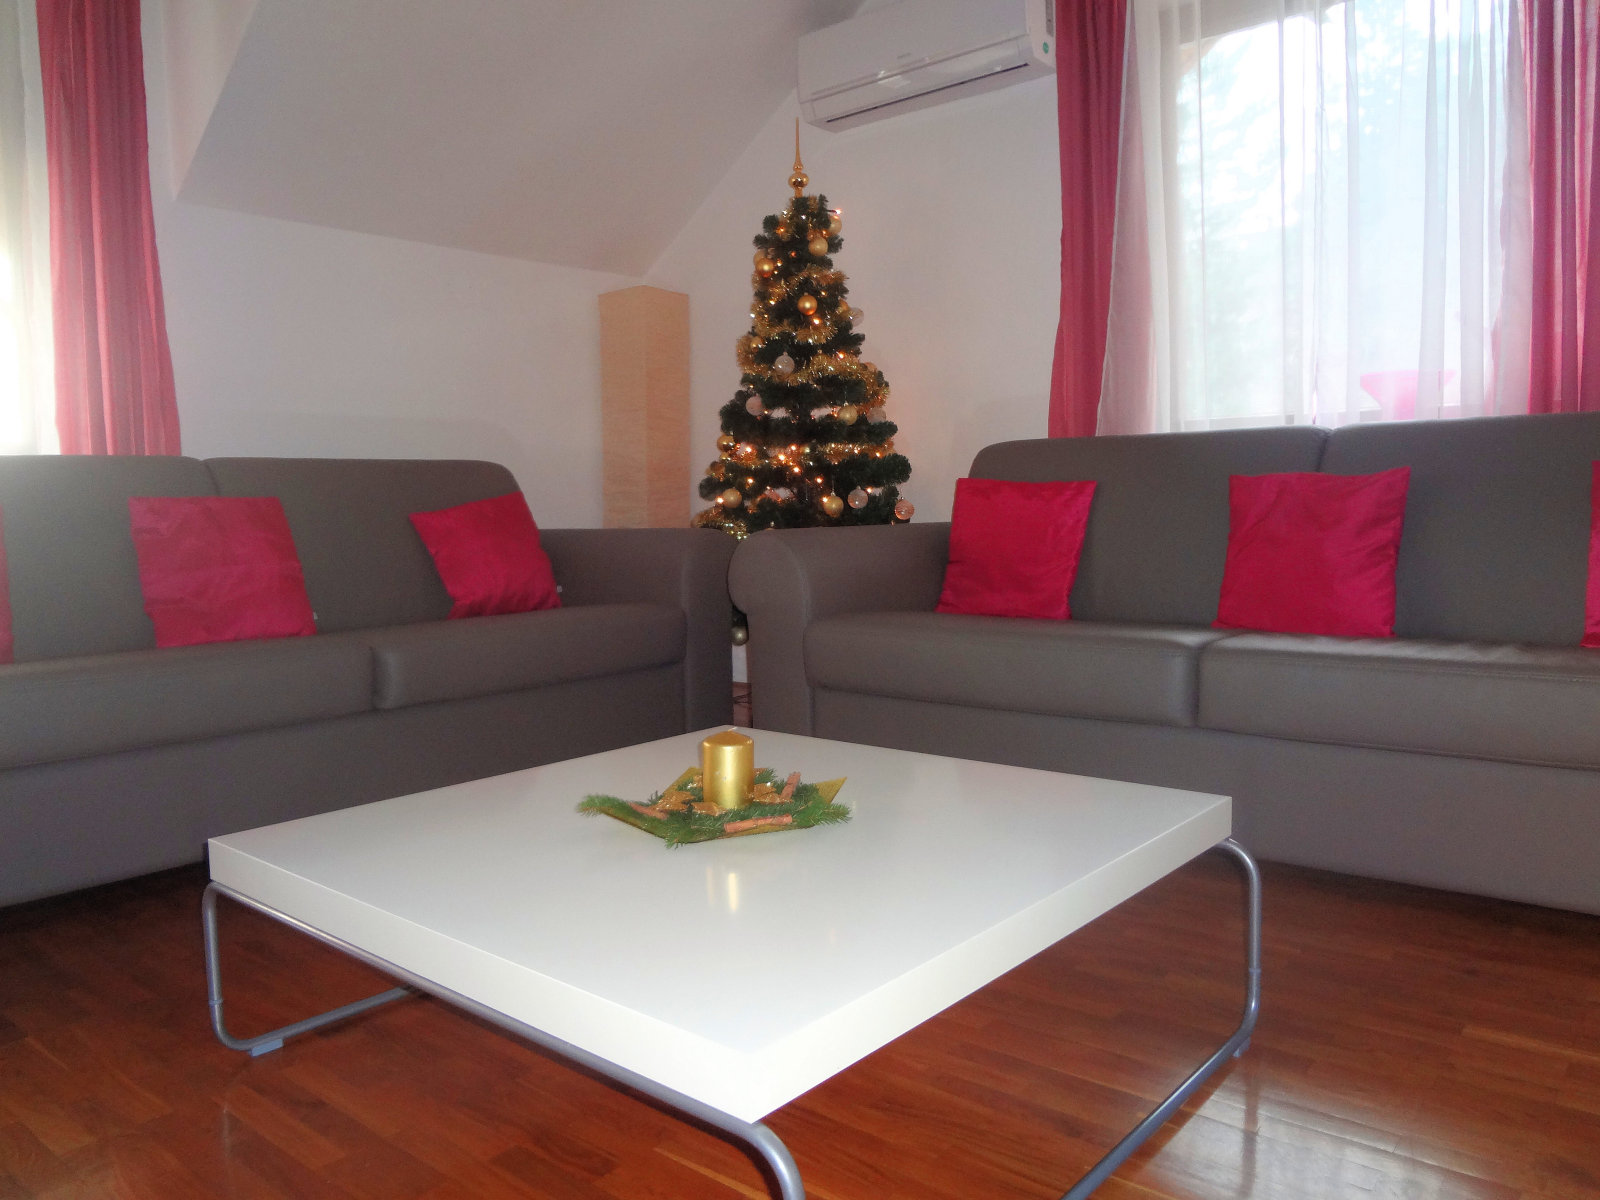 Fine Stay Apartment in Slovenia with a Christmas tree with lights